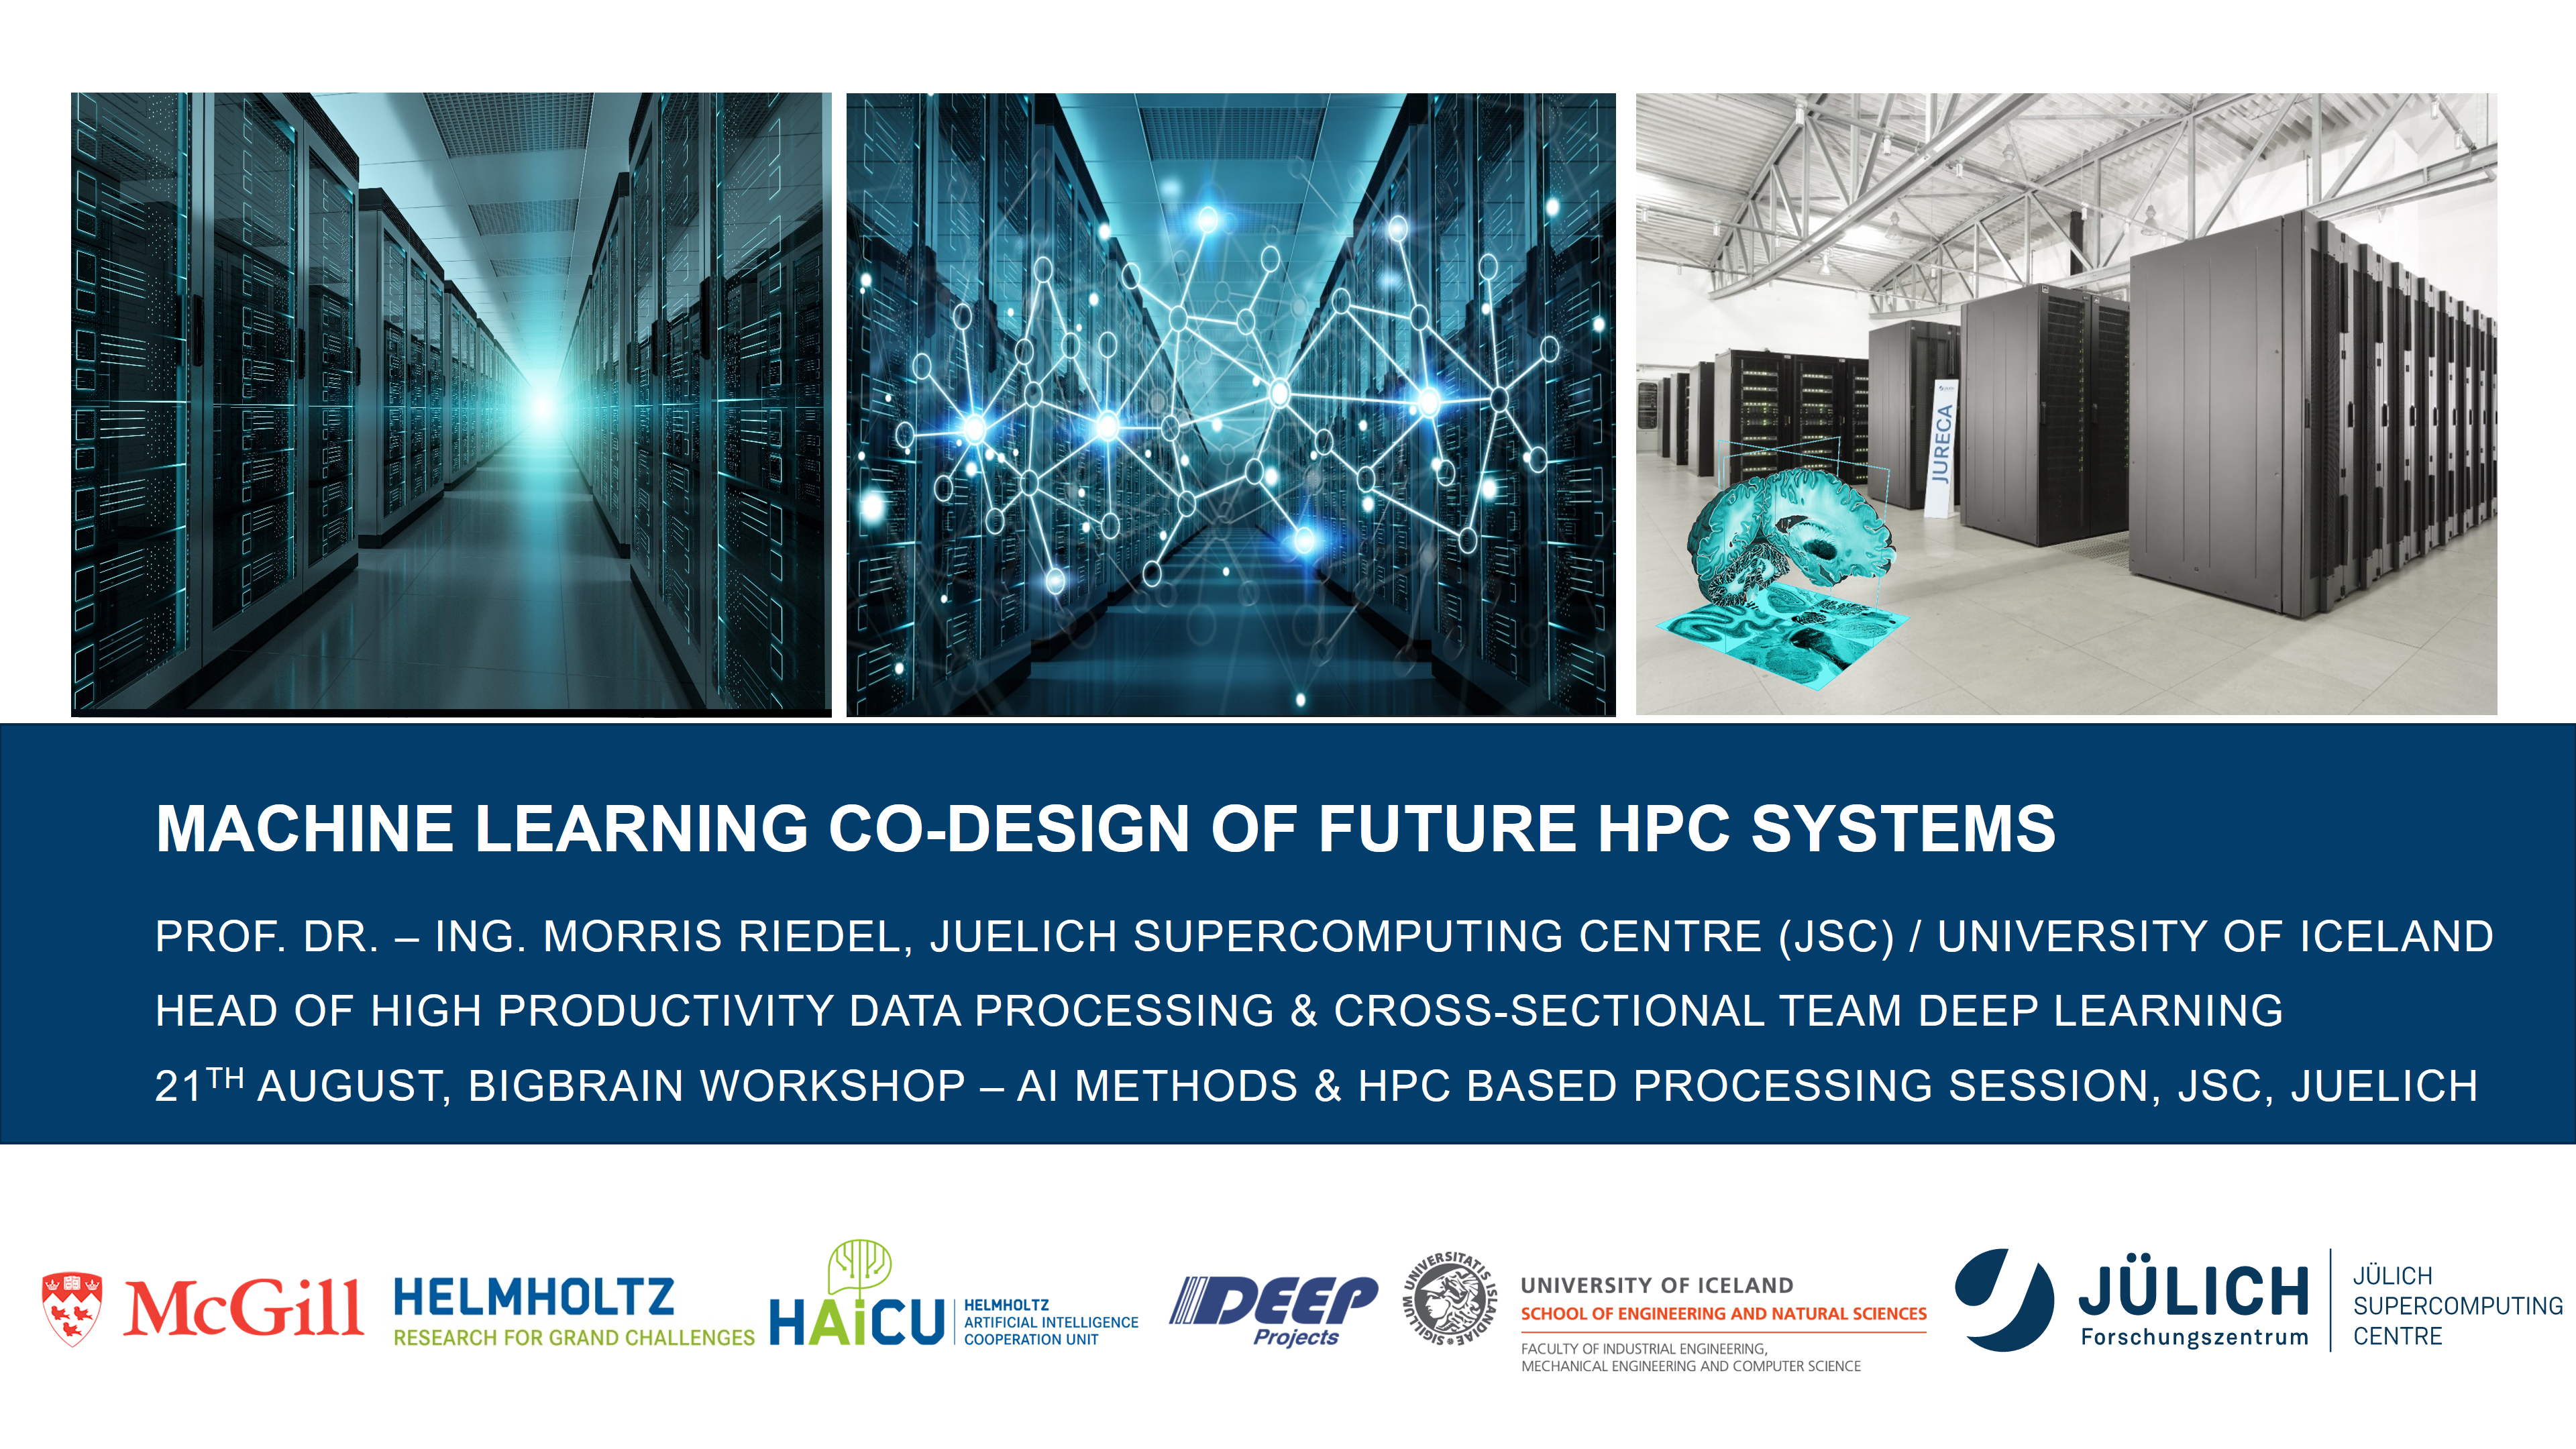 Machine Learning Co-Design of Future HPC Systems